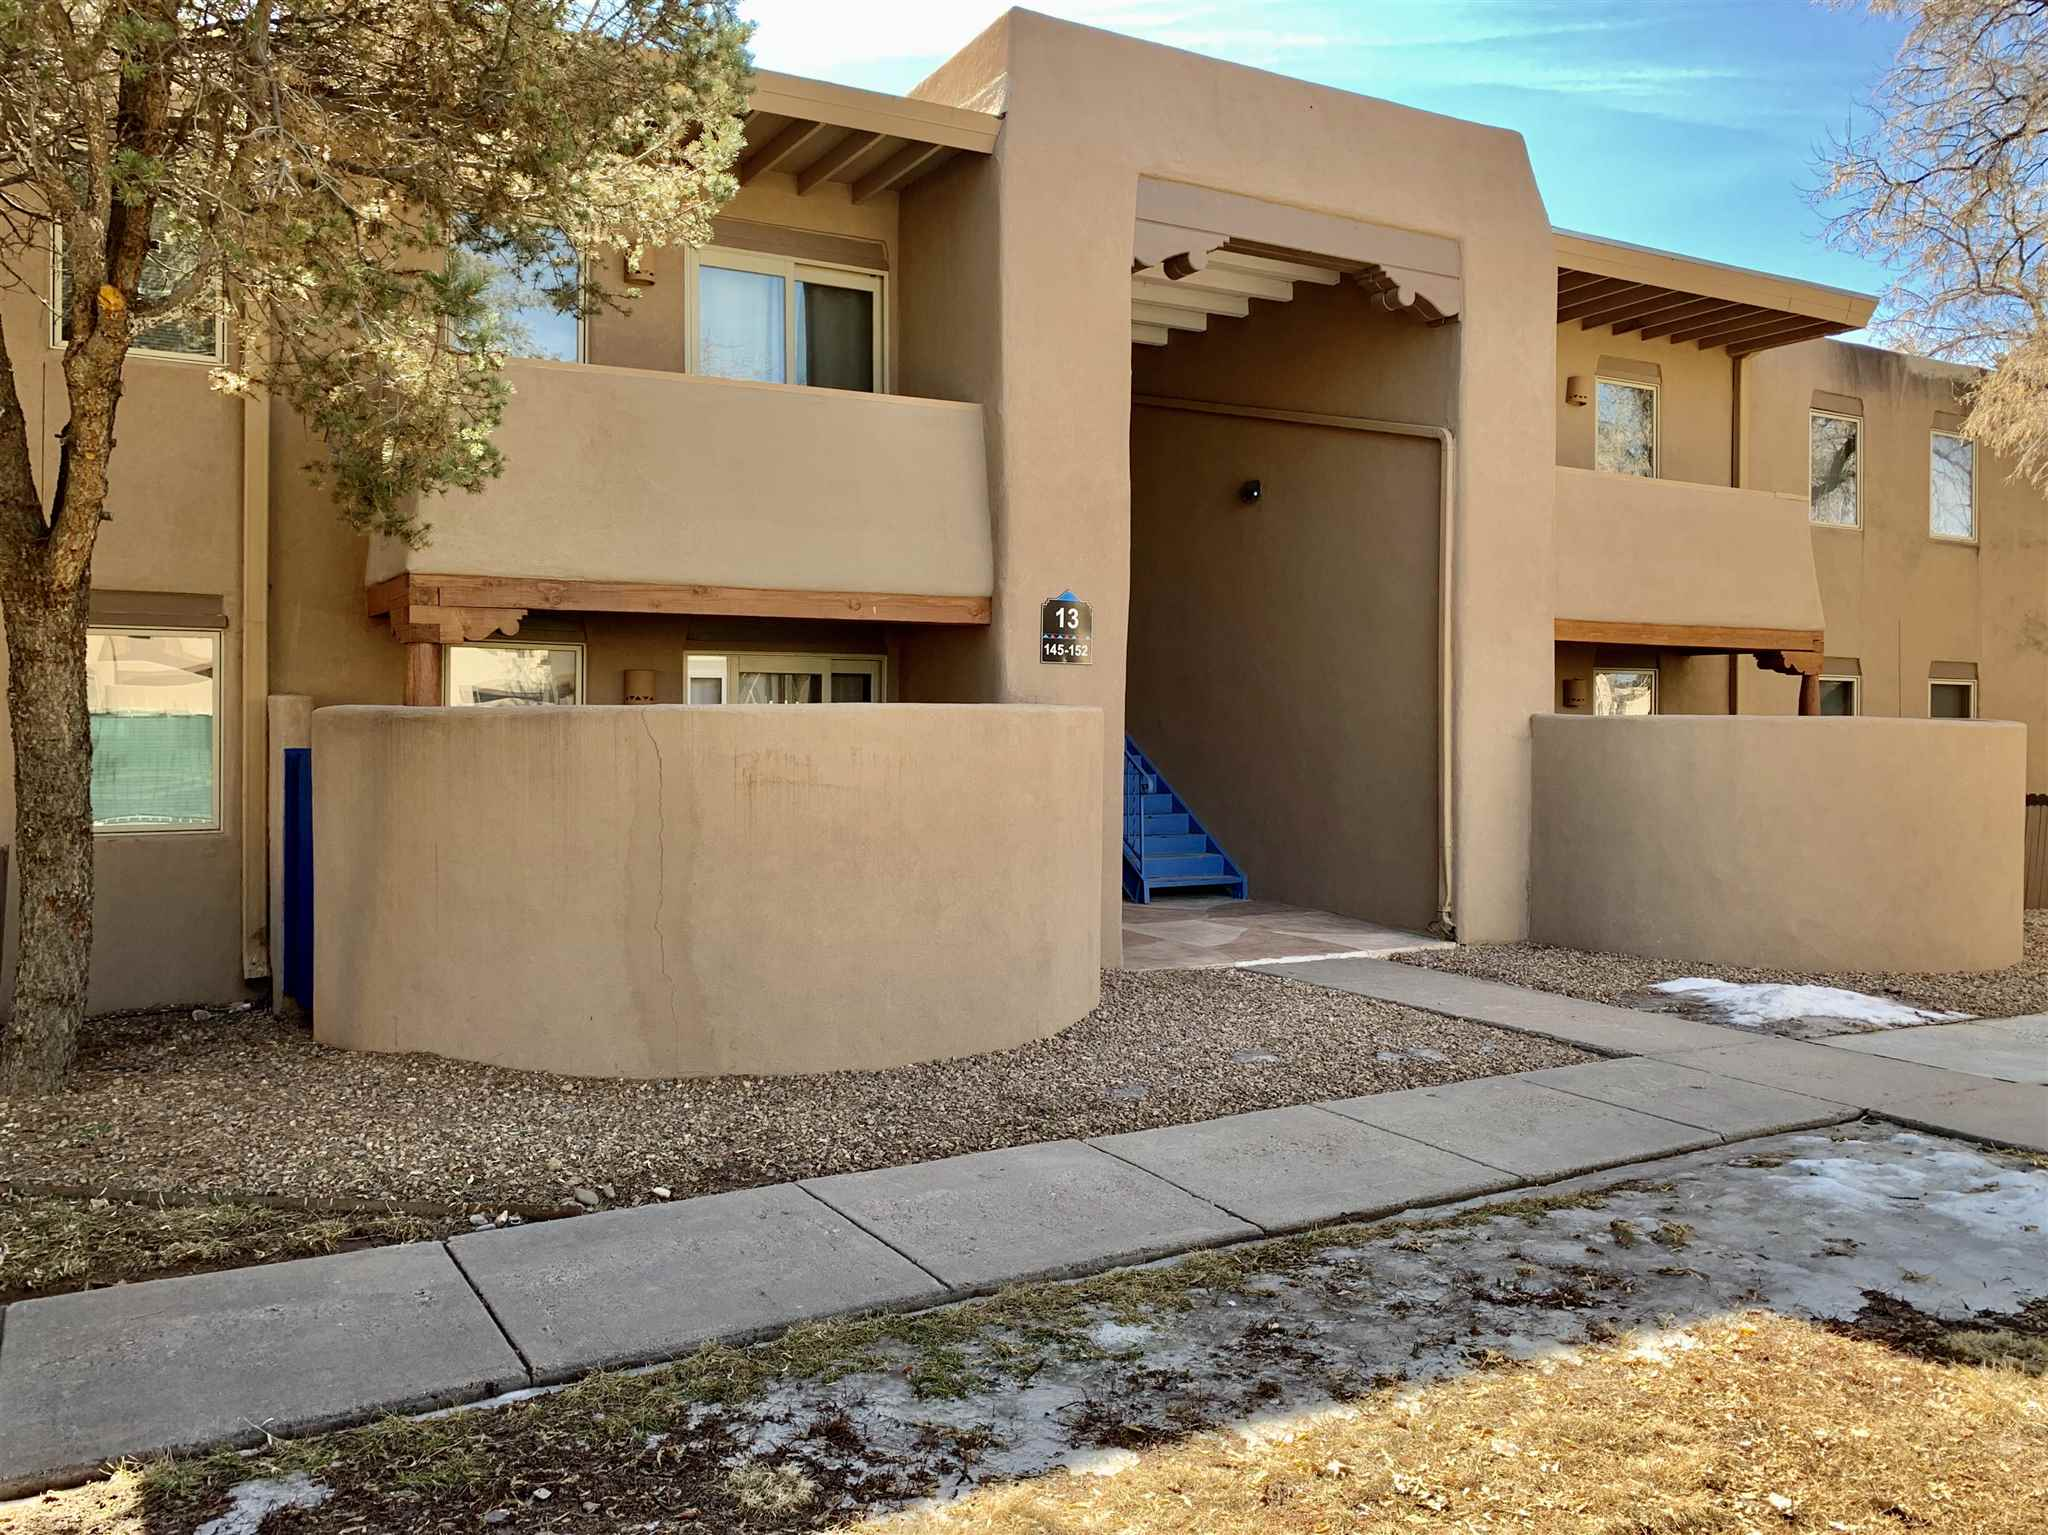 Wonderful investment opportunity to own 8 condo units in central Santa Fe. This block of 8 units offers four 2 bed/2 bath units and four 1 bed/1 bath units. Each unit offers granite slab countertops throughout, hickory cabinetry, in-unit washer & dryer, and jetted tubs in the master bath. The well appointed kitchens all have stainless steel appliances. Each unit features Pella windows & patio doors, and Rheem air conditioning. The first-floor units offer amply sized patio space. The upstairs units offer lovely balconies. San Mateo de Santa Fe offers many outstanding amenities to their owners and tenants that include a seasonally heated pool, fitness center, clubhouse with free wifi, basic dish TV, gated entrance, security, separate dog run, and BBQ gazebos throughout the 11.2 acre mature landscaped community. The property affords generous spacing between all buildings. Less than 10 minutes from the historic Santa Fe plaza, it provides easy accessibility to many of Santa Fe's conveniences such as Trader Joes, Whole Foods and Smiths. St Vincent's Hospital, the St Michaels corridor, and the rail trail bike/walking path are within minutes of this fabulous community. San Mateo offers onsite property management for an additional monthly fee.